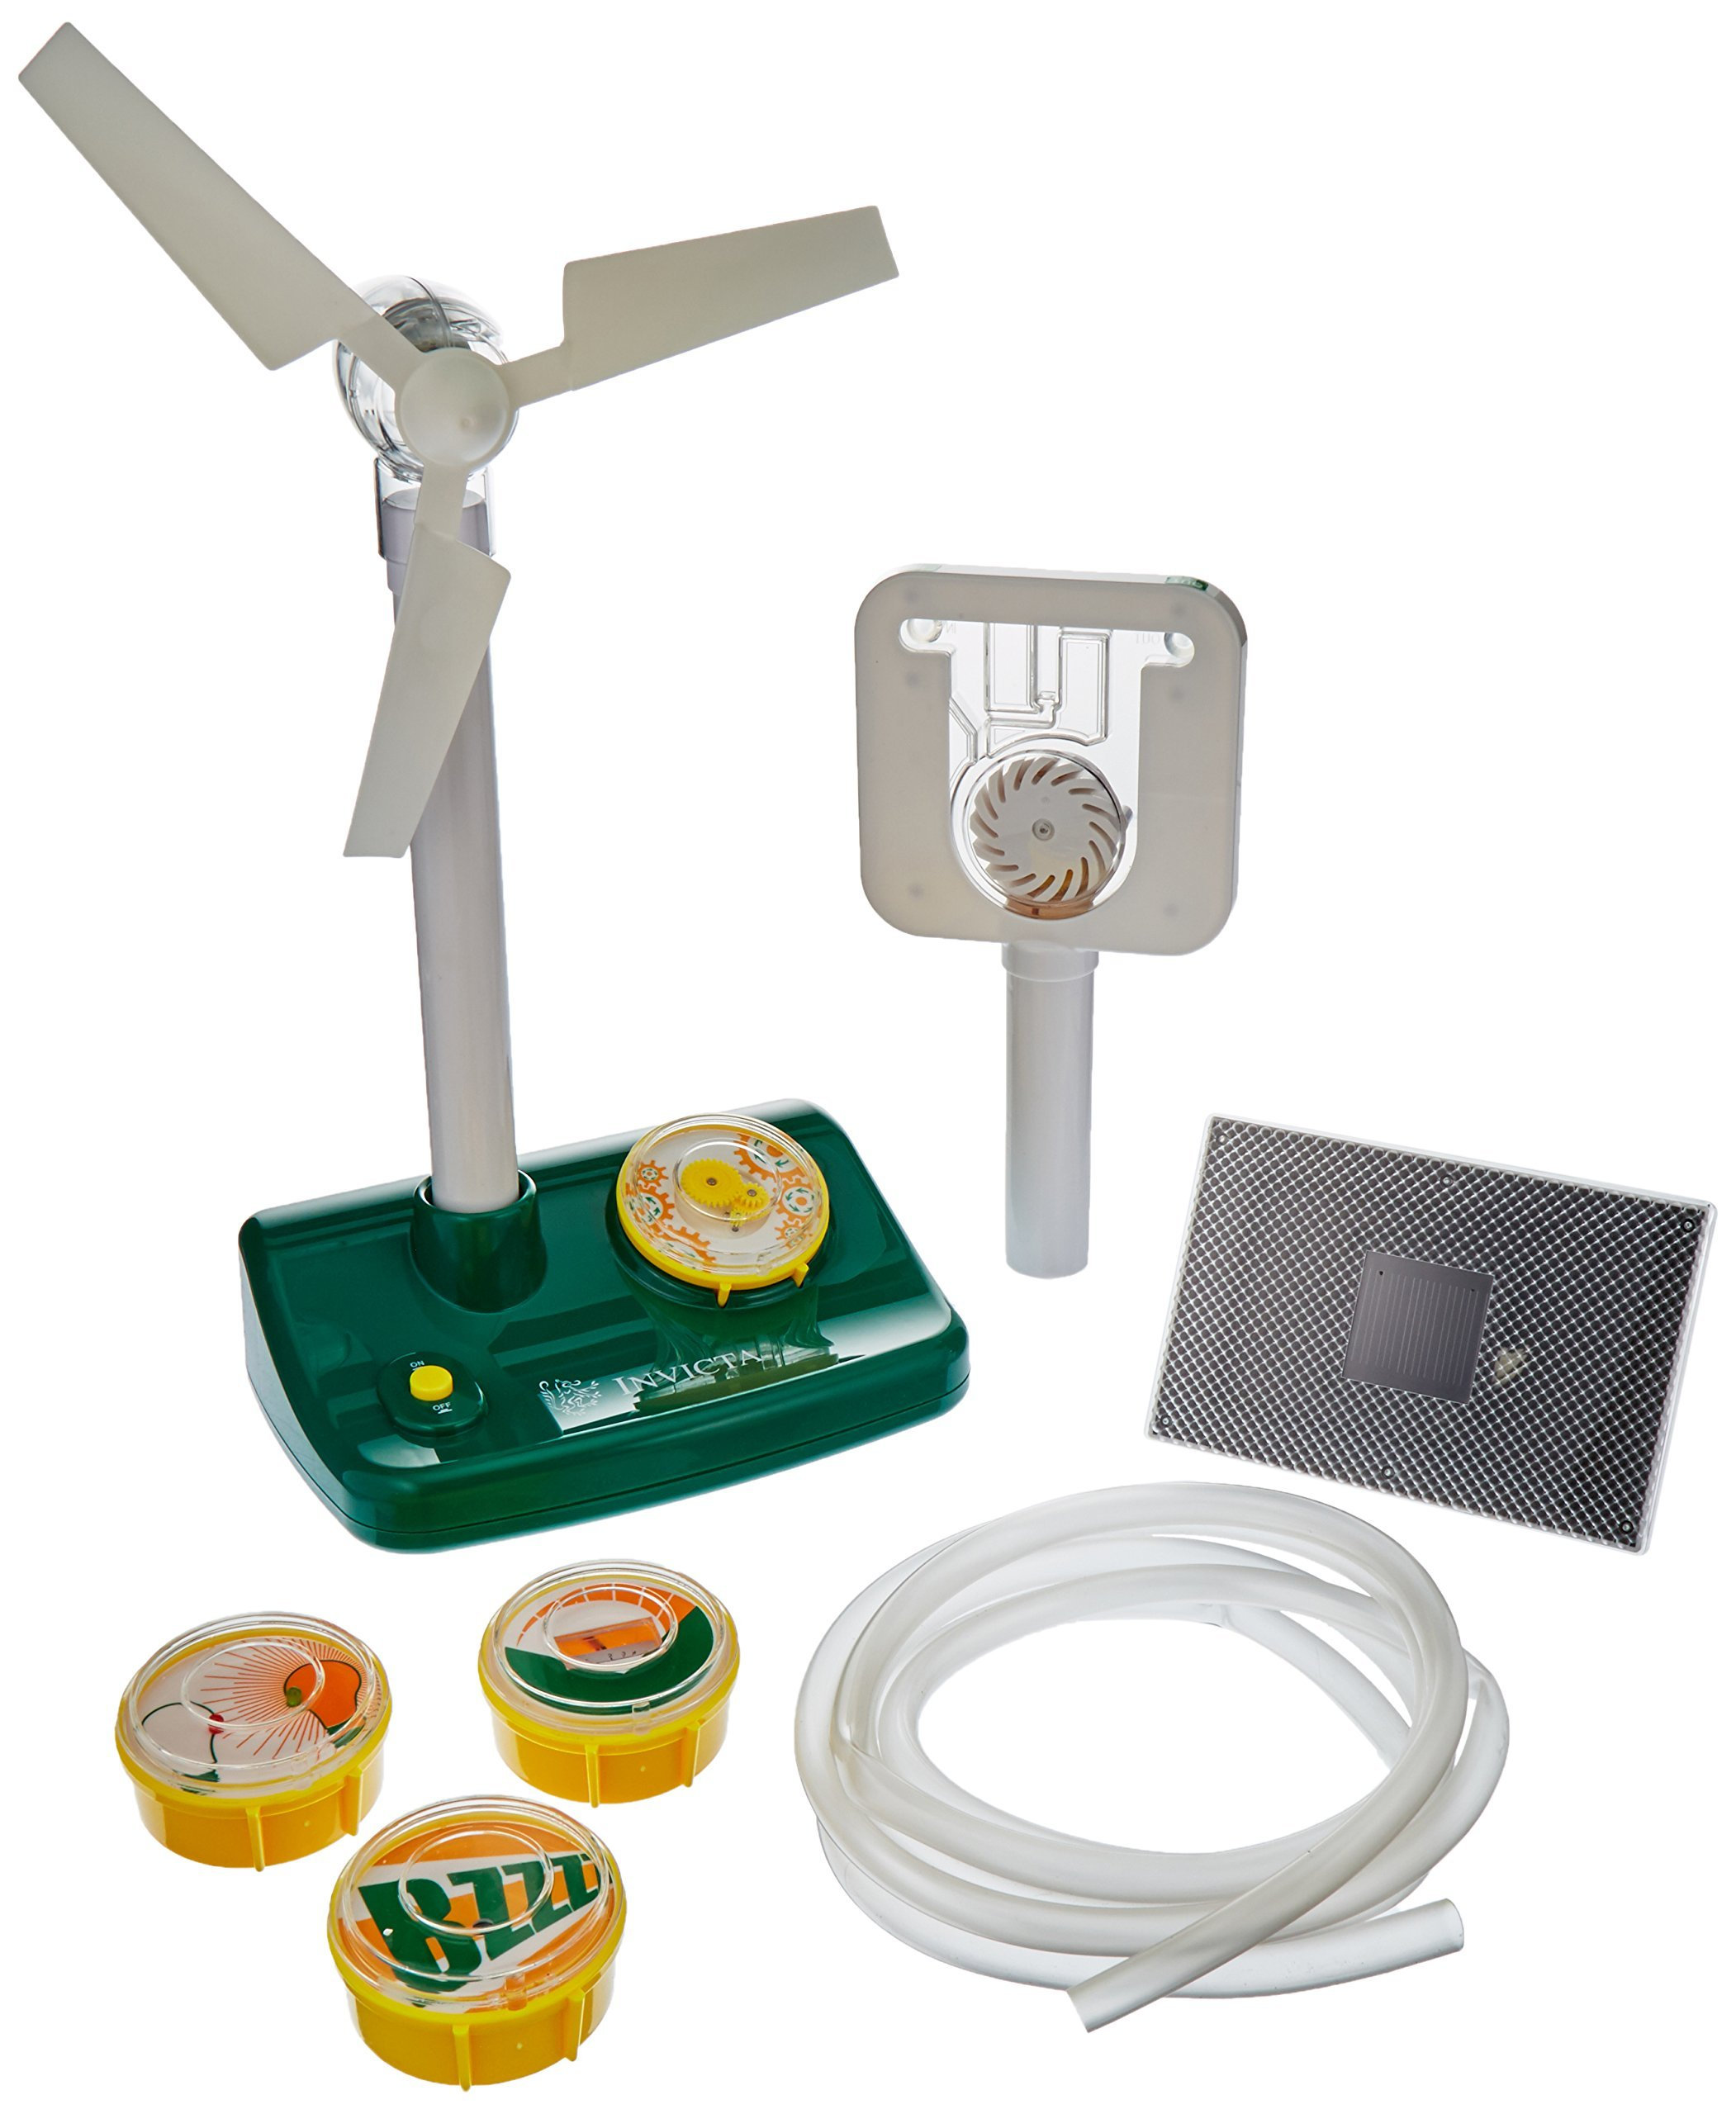 Didax Educational Resources Renewable Energy Kit by Didax